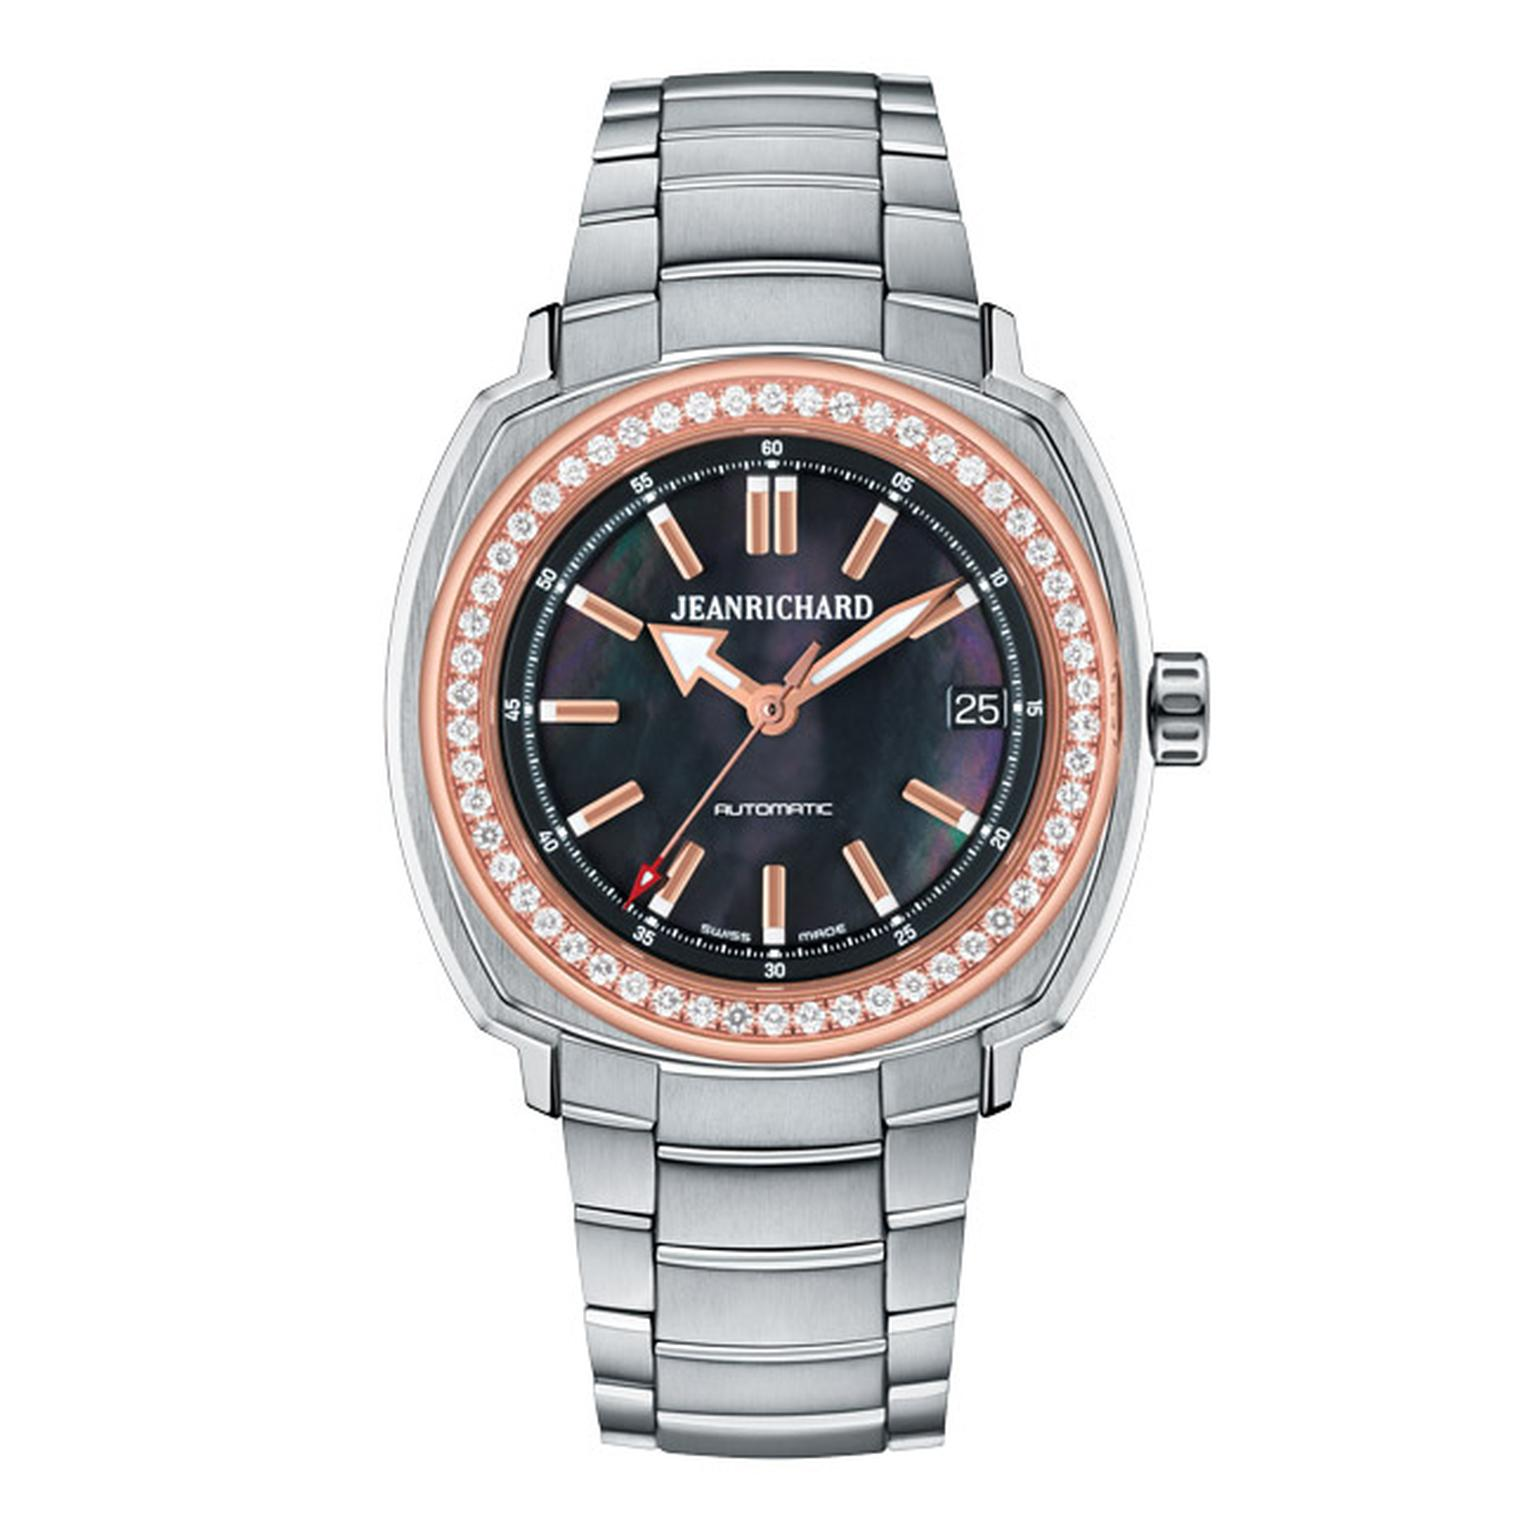 JeanRichard Terrascope watch with a dark mother-of-pearl dial and a diamond set bezel.